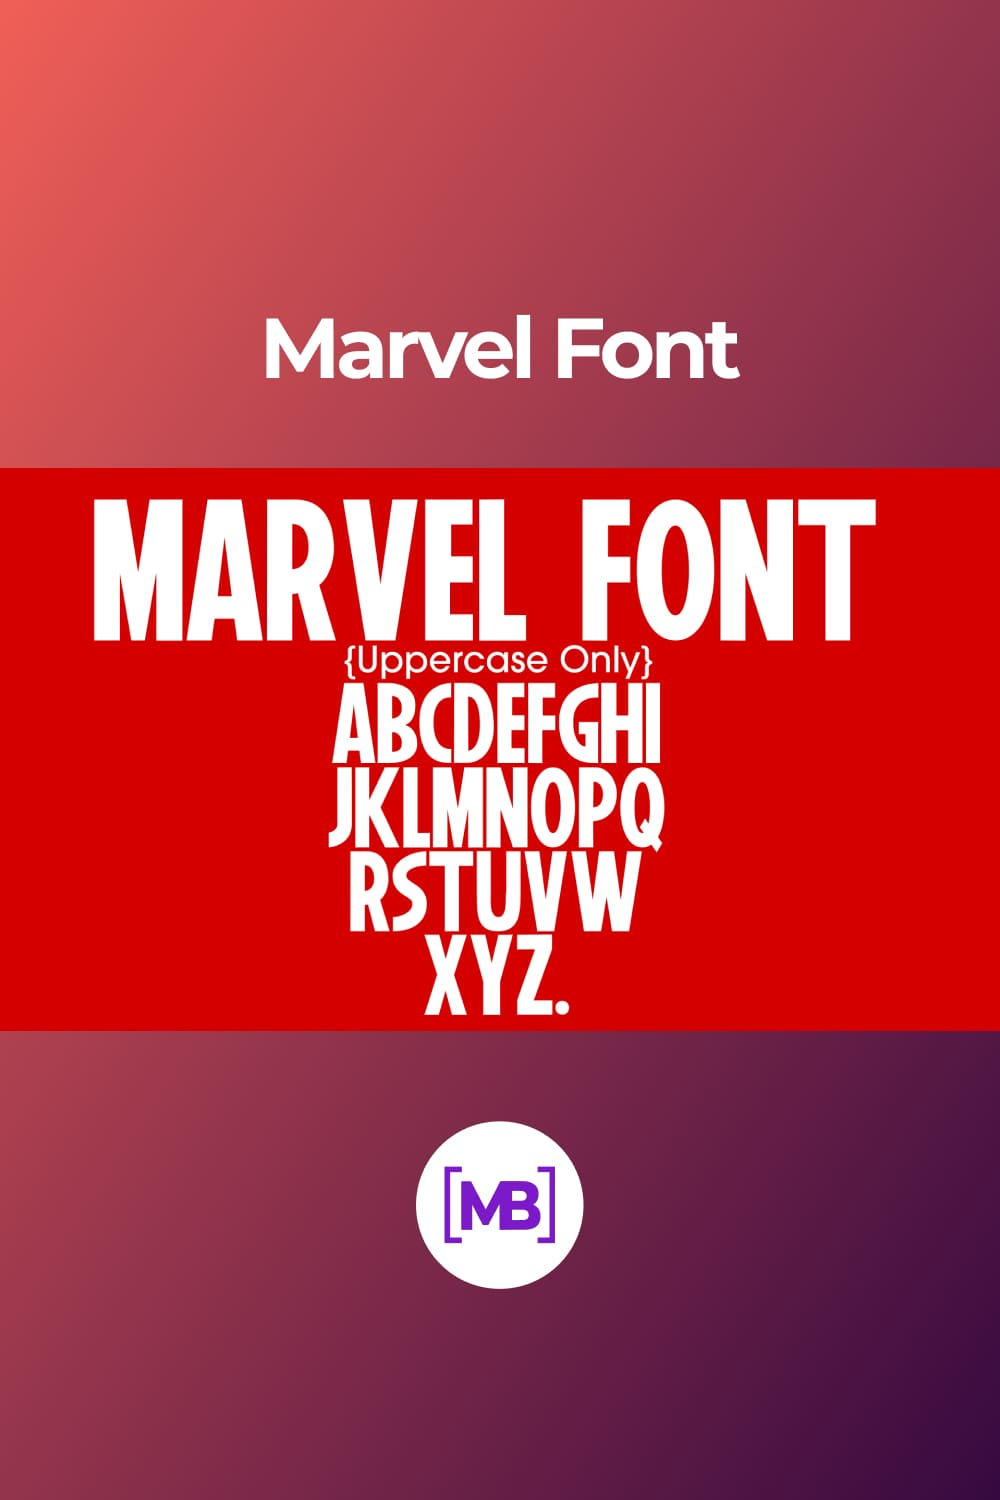 A font for real superheroes.